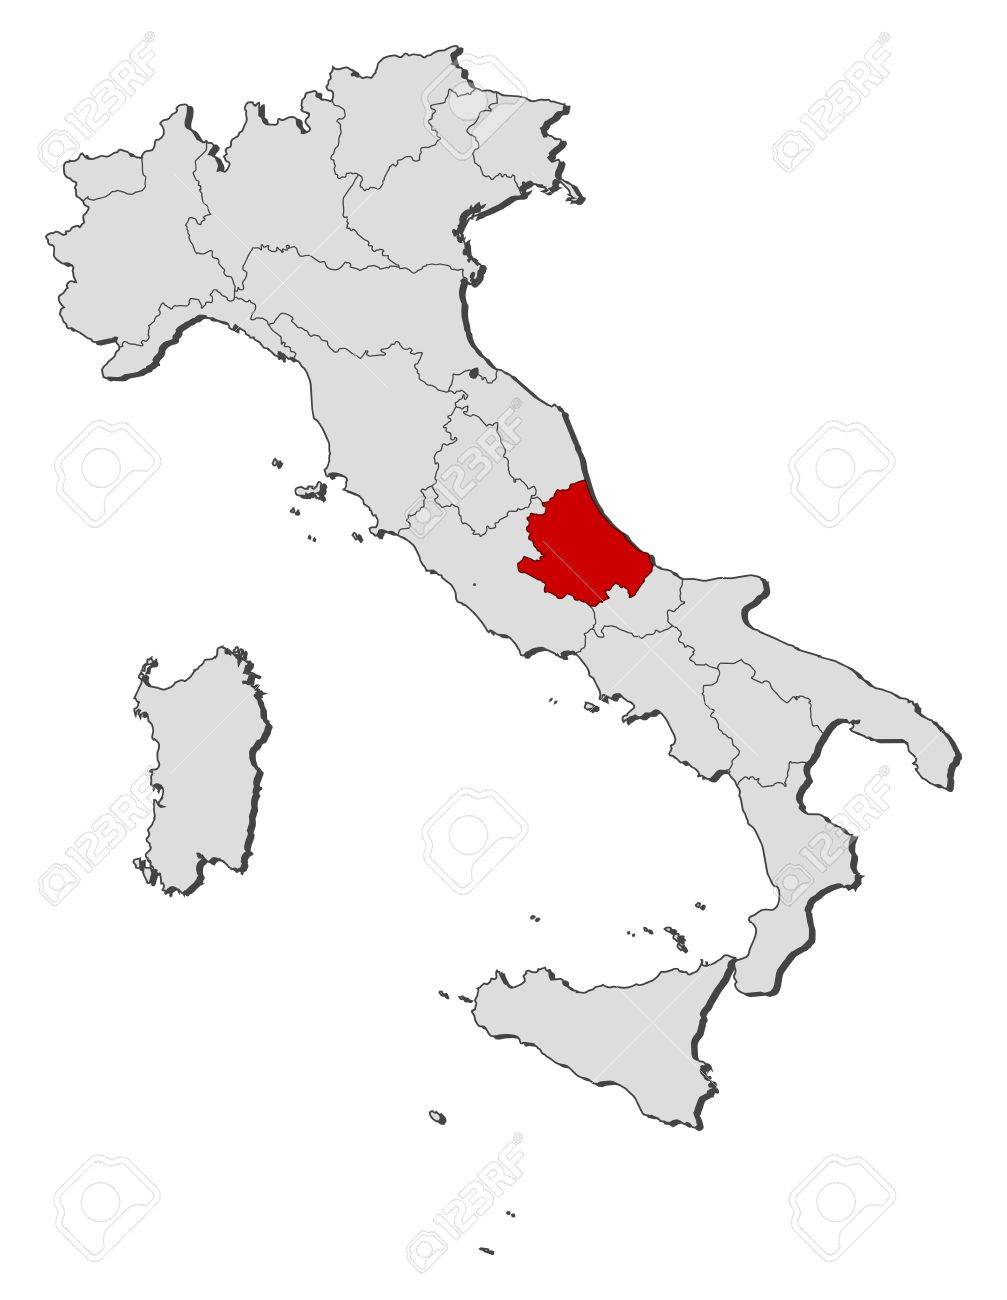 Map Of Italy Abruzzo Region.Political Map Of Italy With The Several Regions Where Abruzzo